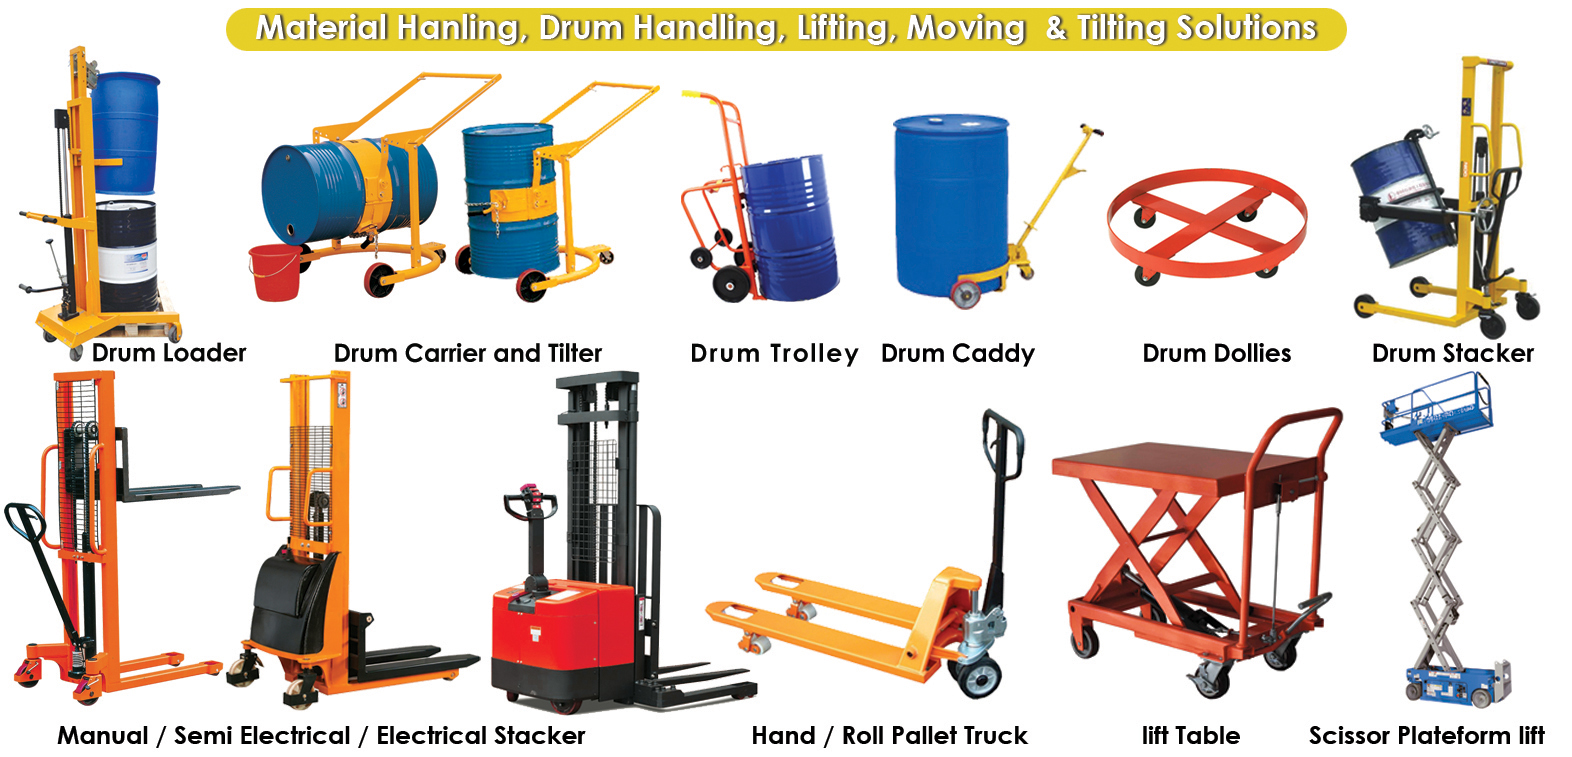 cash counting machines warehousing materials drum handling solutions warehousing material. Black Bedroom Furniture Sets. Home Design Ideas